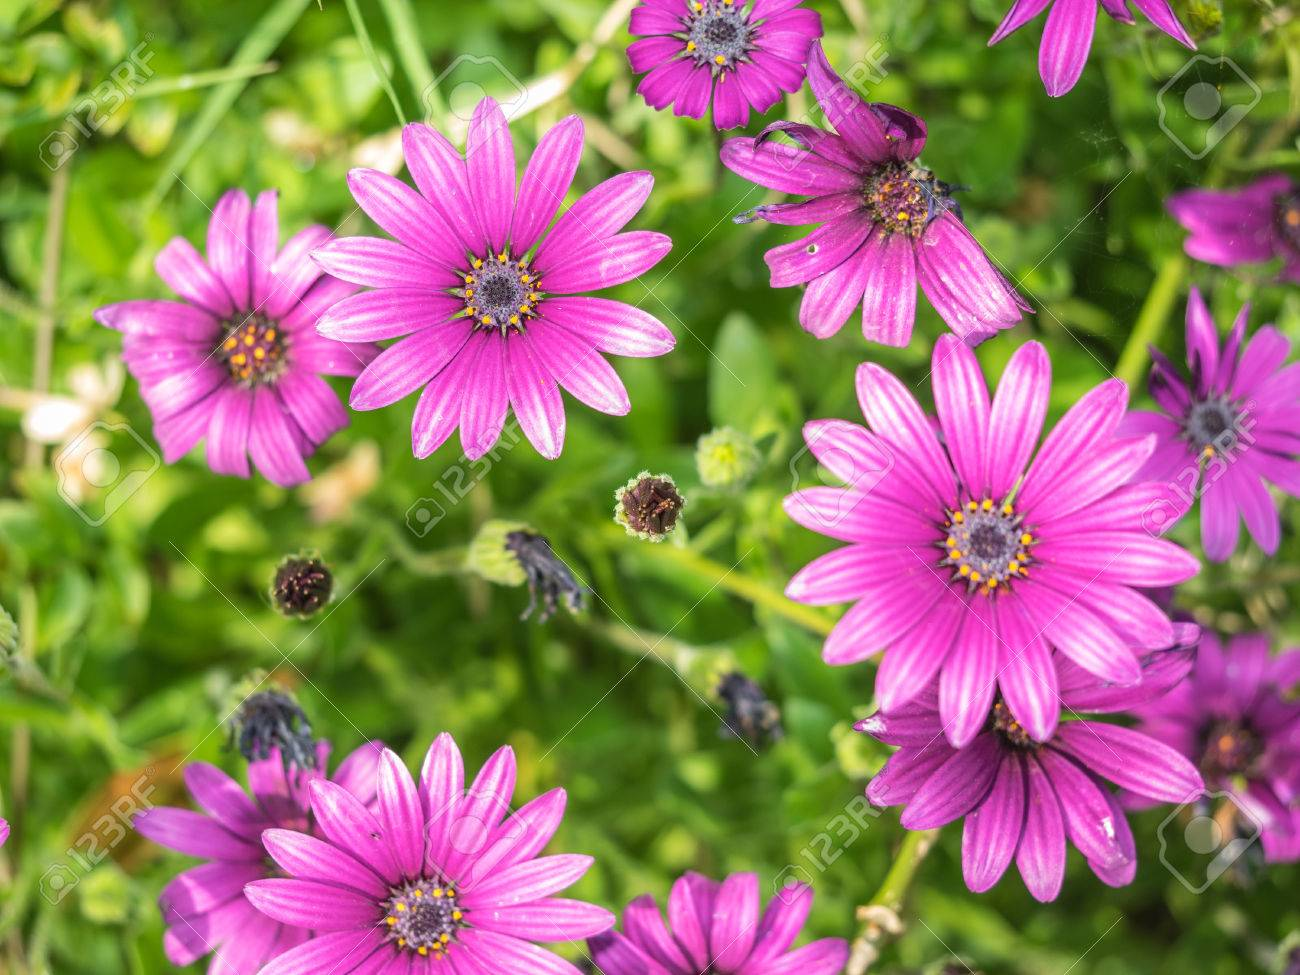 Purple South African Daisy Osteospermum X Daisy Like Composite